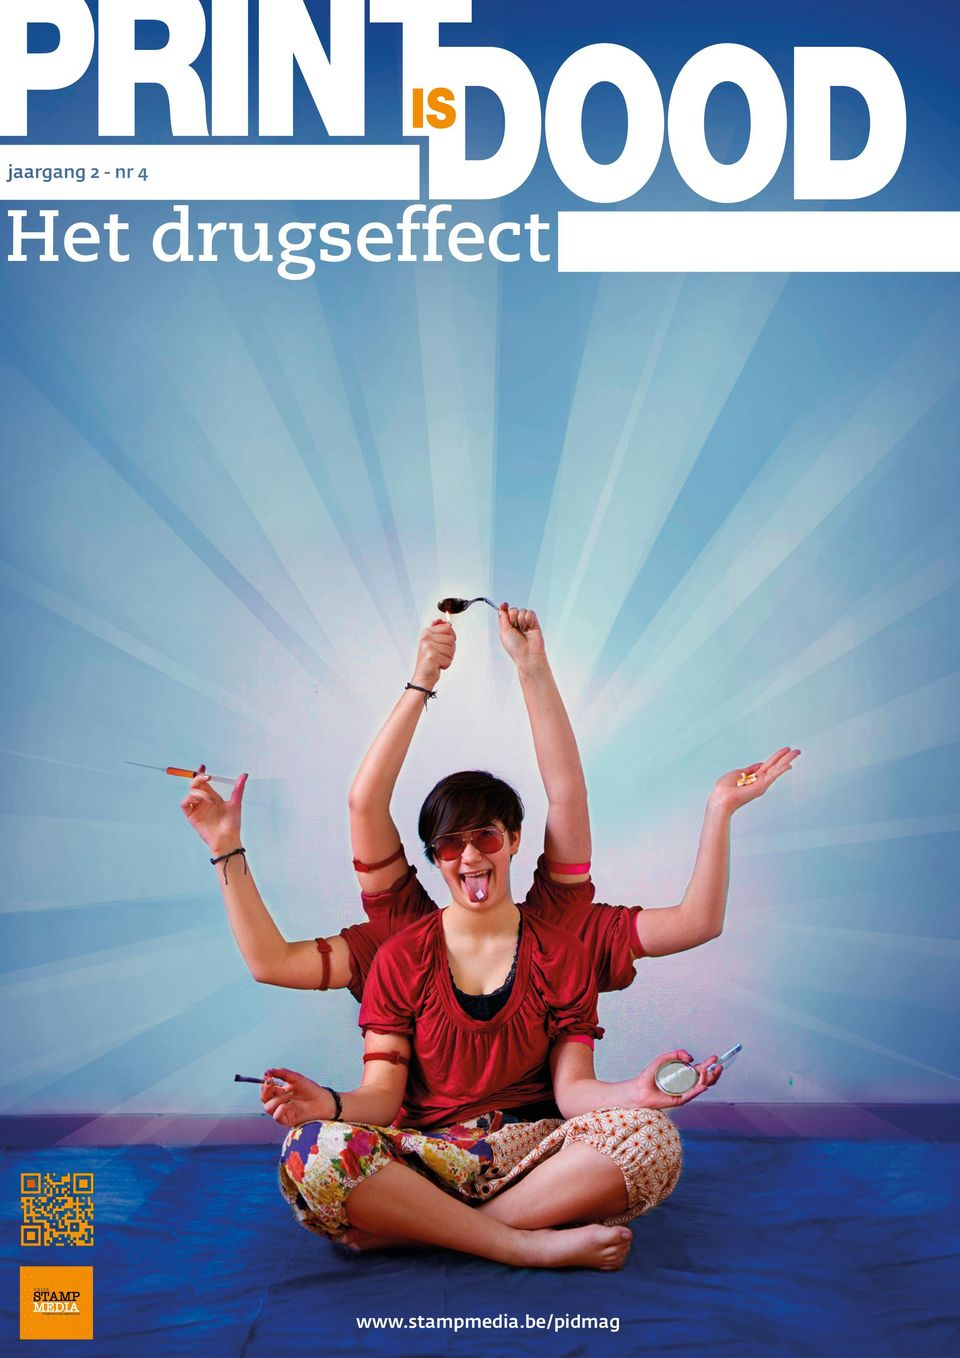 drugseffect